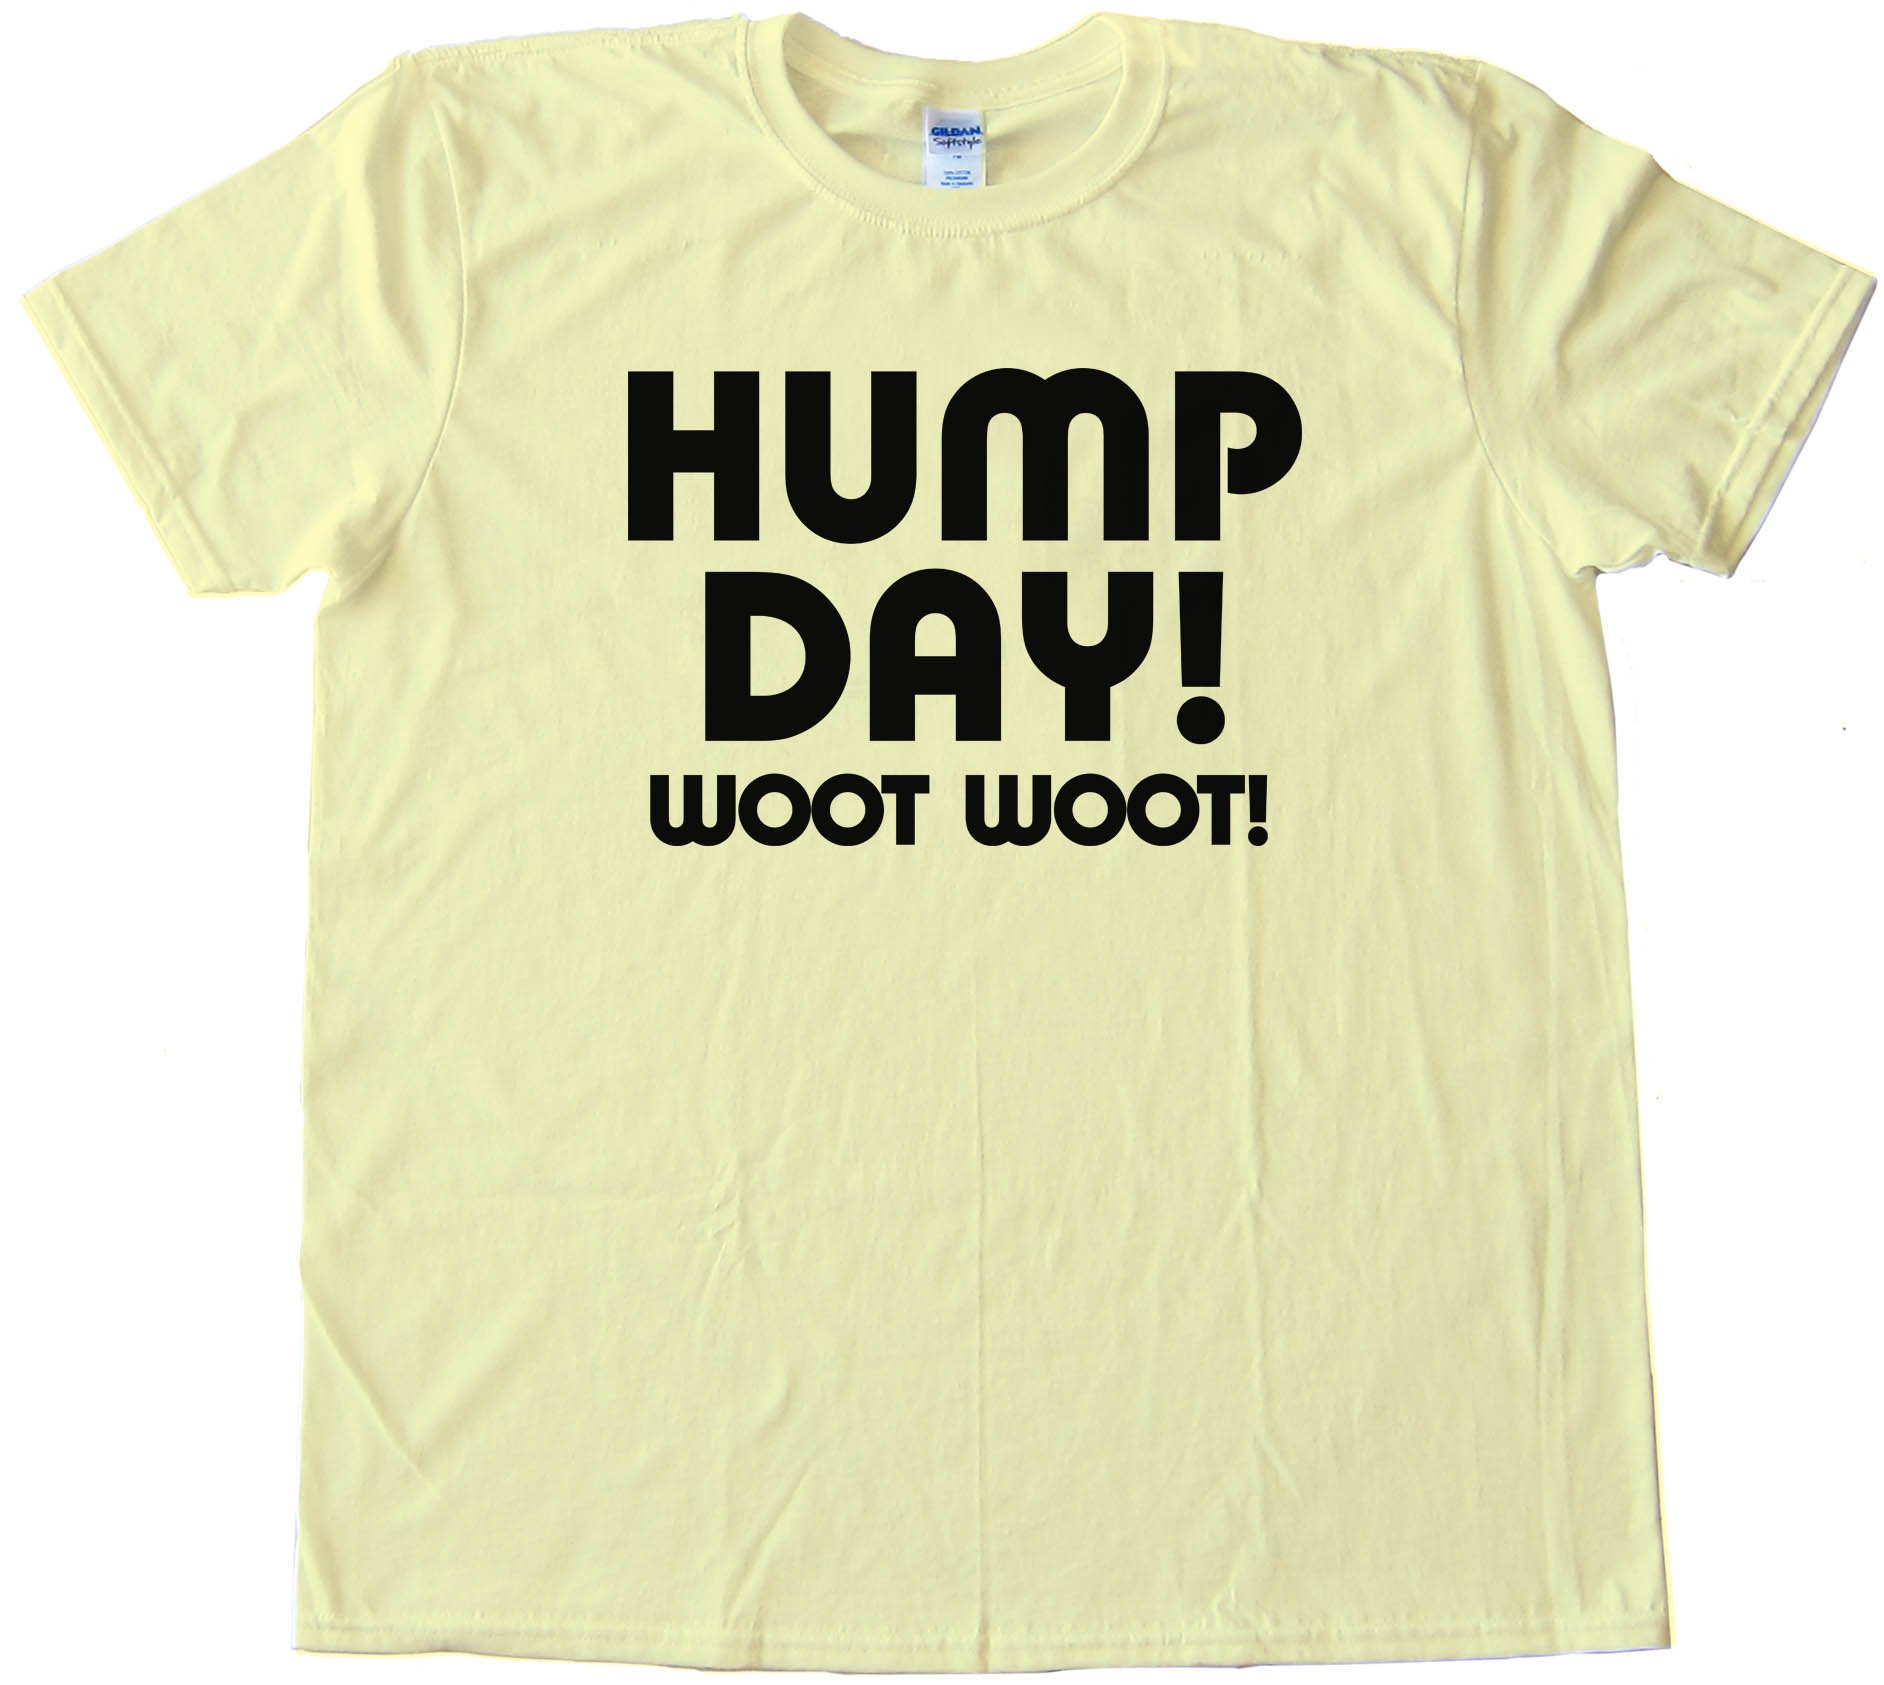 Text Hump Day Woot Woot! - Tee Shirt